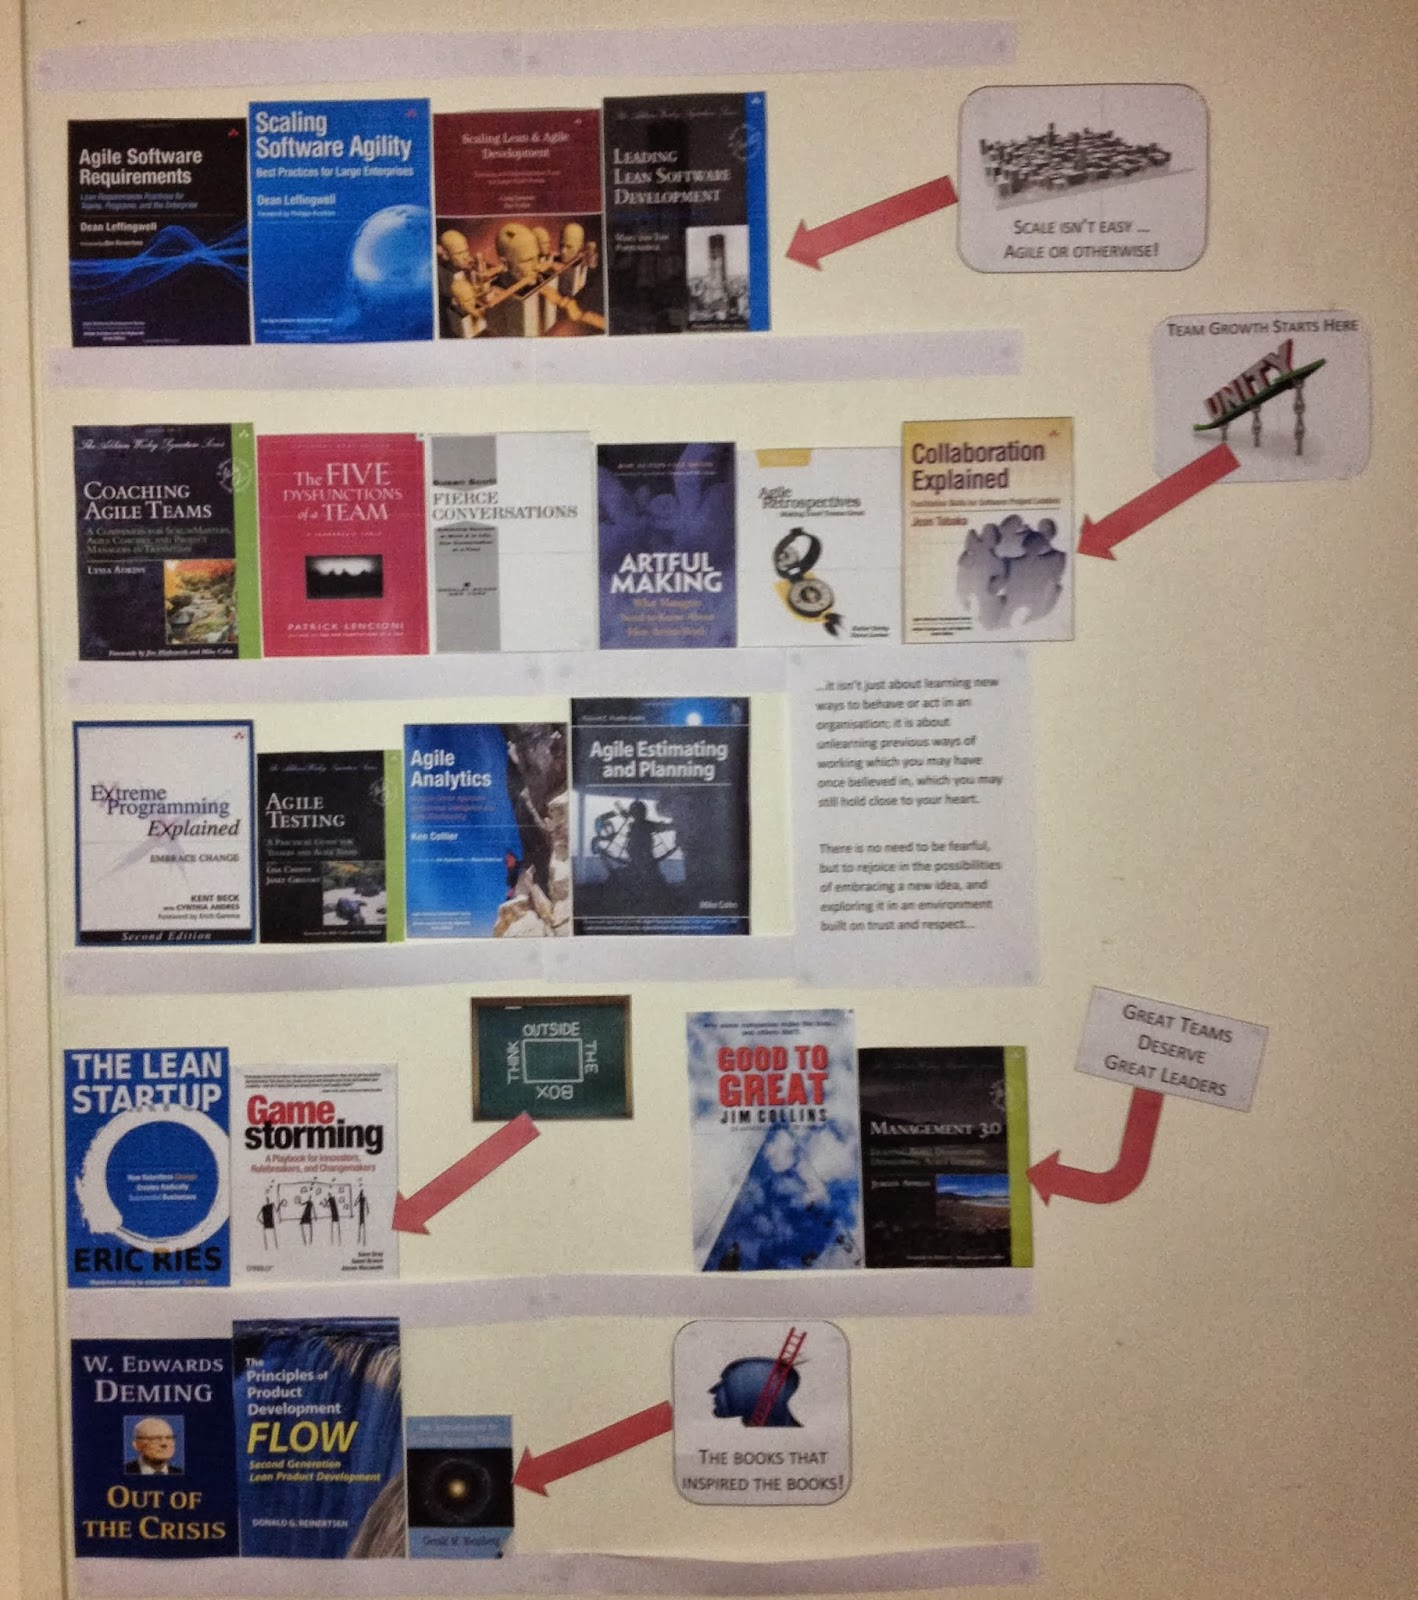 Scaled Agile Book Wall